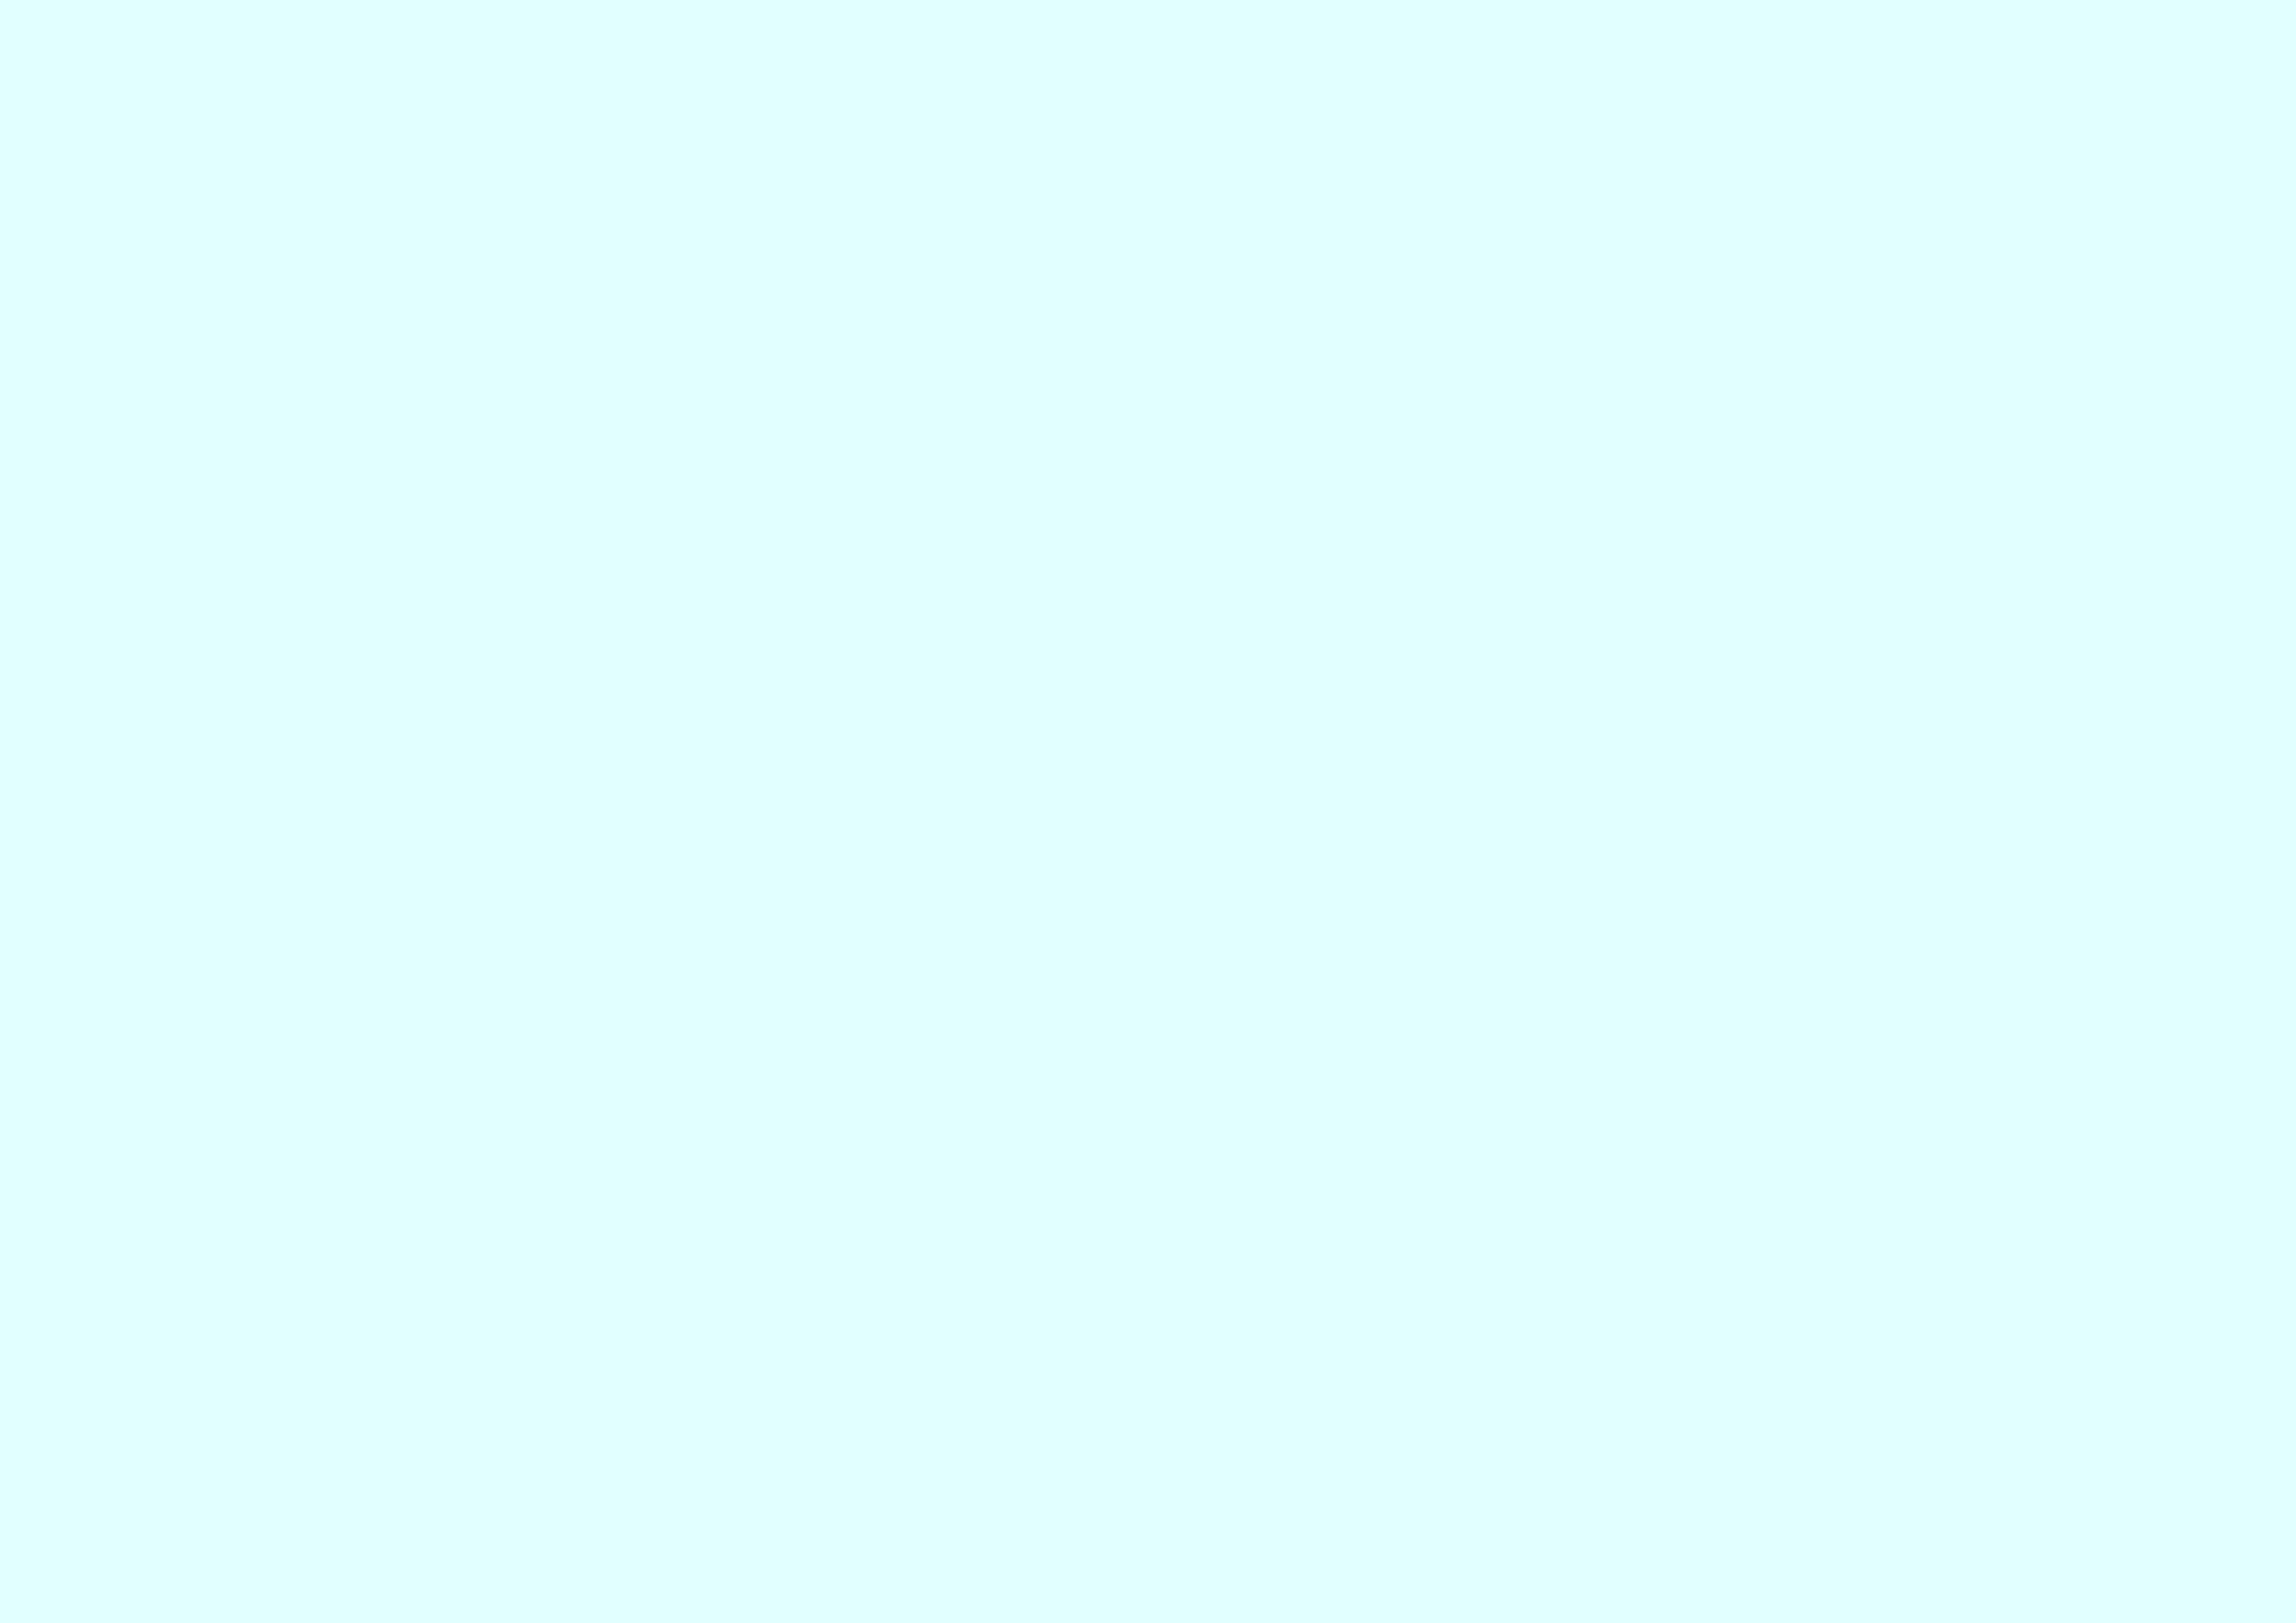 3508x2480 Light Cyan Solid Color Background